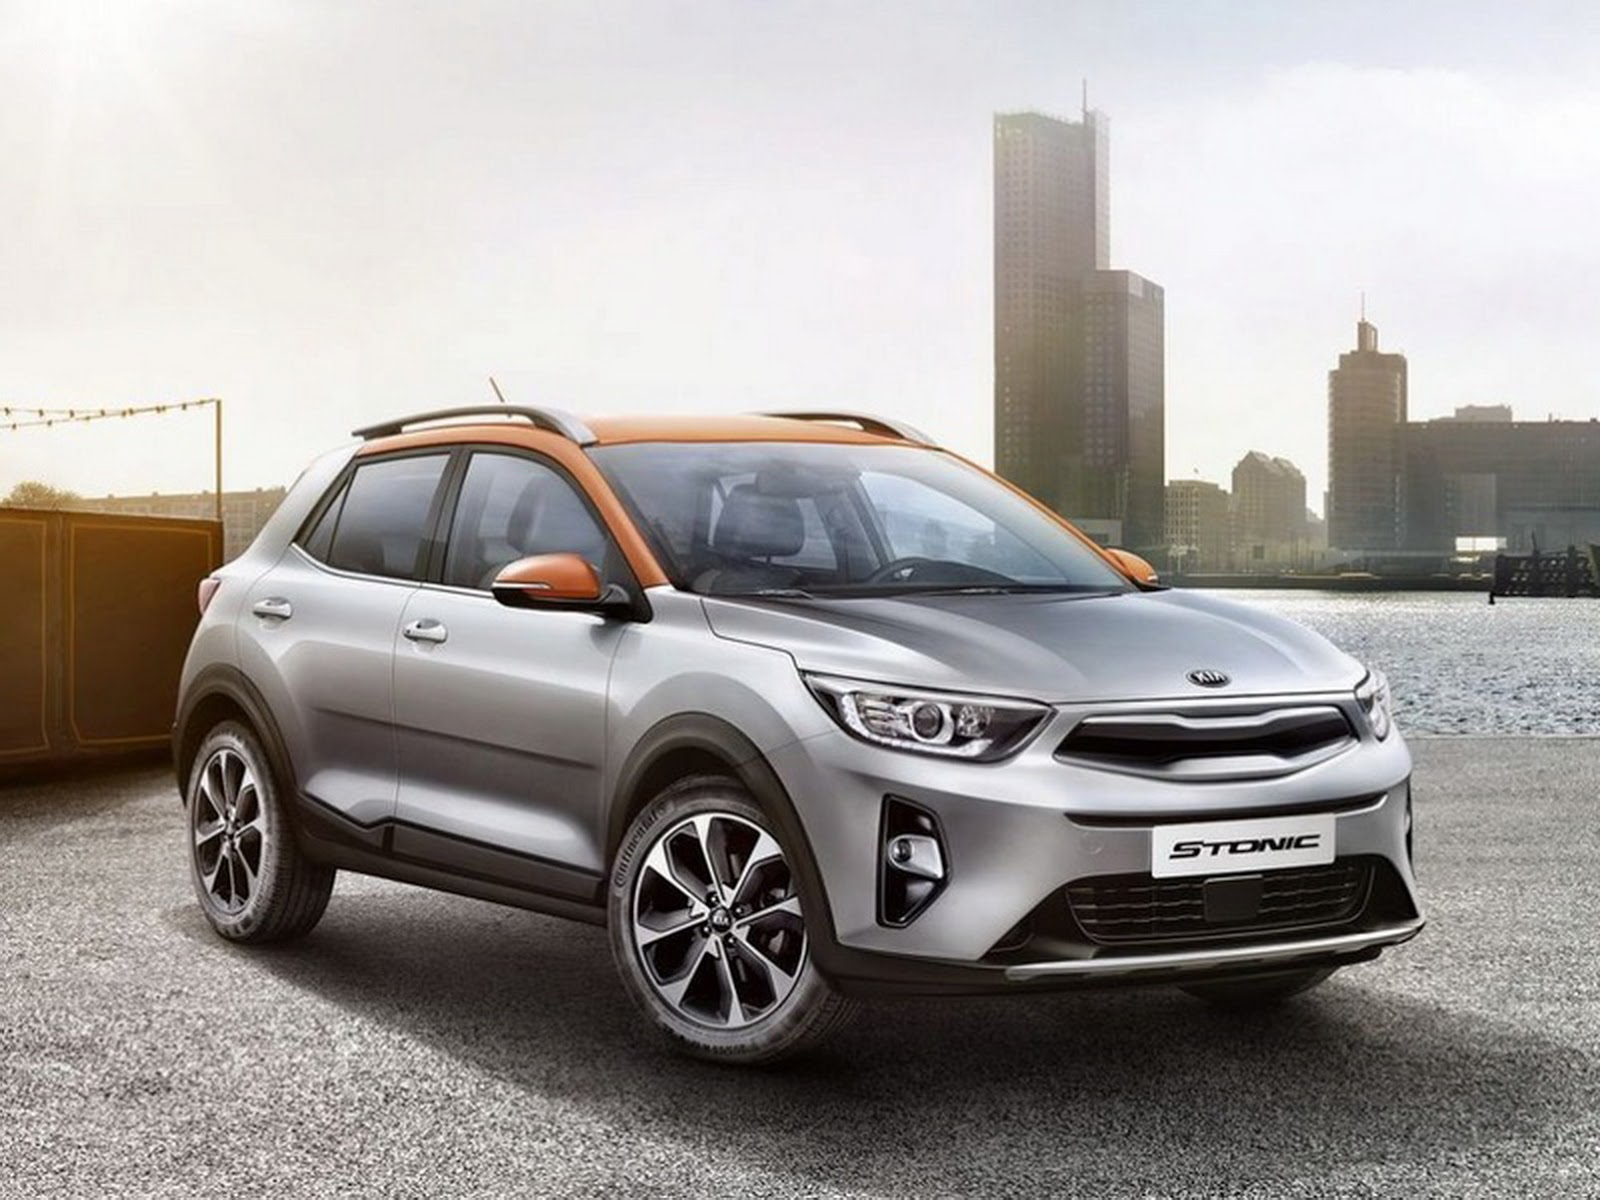 2018 kia stonic mini crossover gets an early reveal carscoops. Black Bedroom Furniture Sets. Home Design Ideas